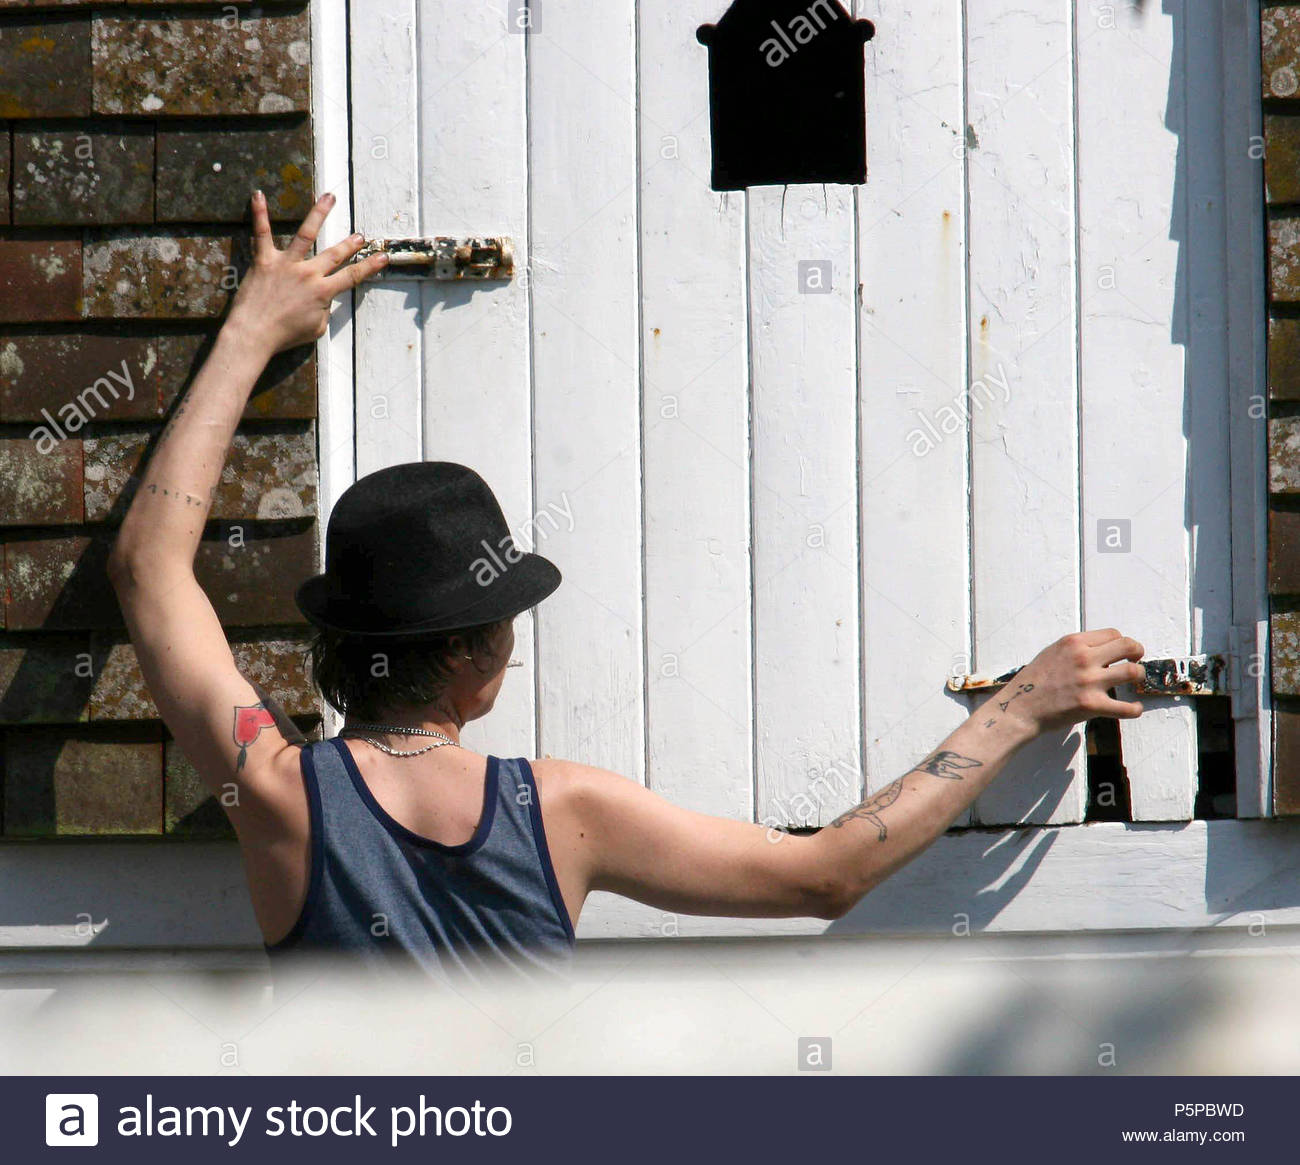 Babyshambles lead singer Pete Doherty fixing a door on his garage at his home in Durley Marlbourgh. Pete who had been serving a prison sentence at Wormwood ... & Babyshambles lead singer Pete Doherty fixing a door on his garage at ...